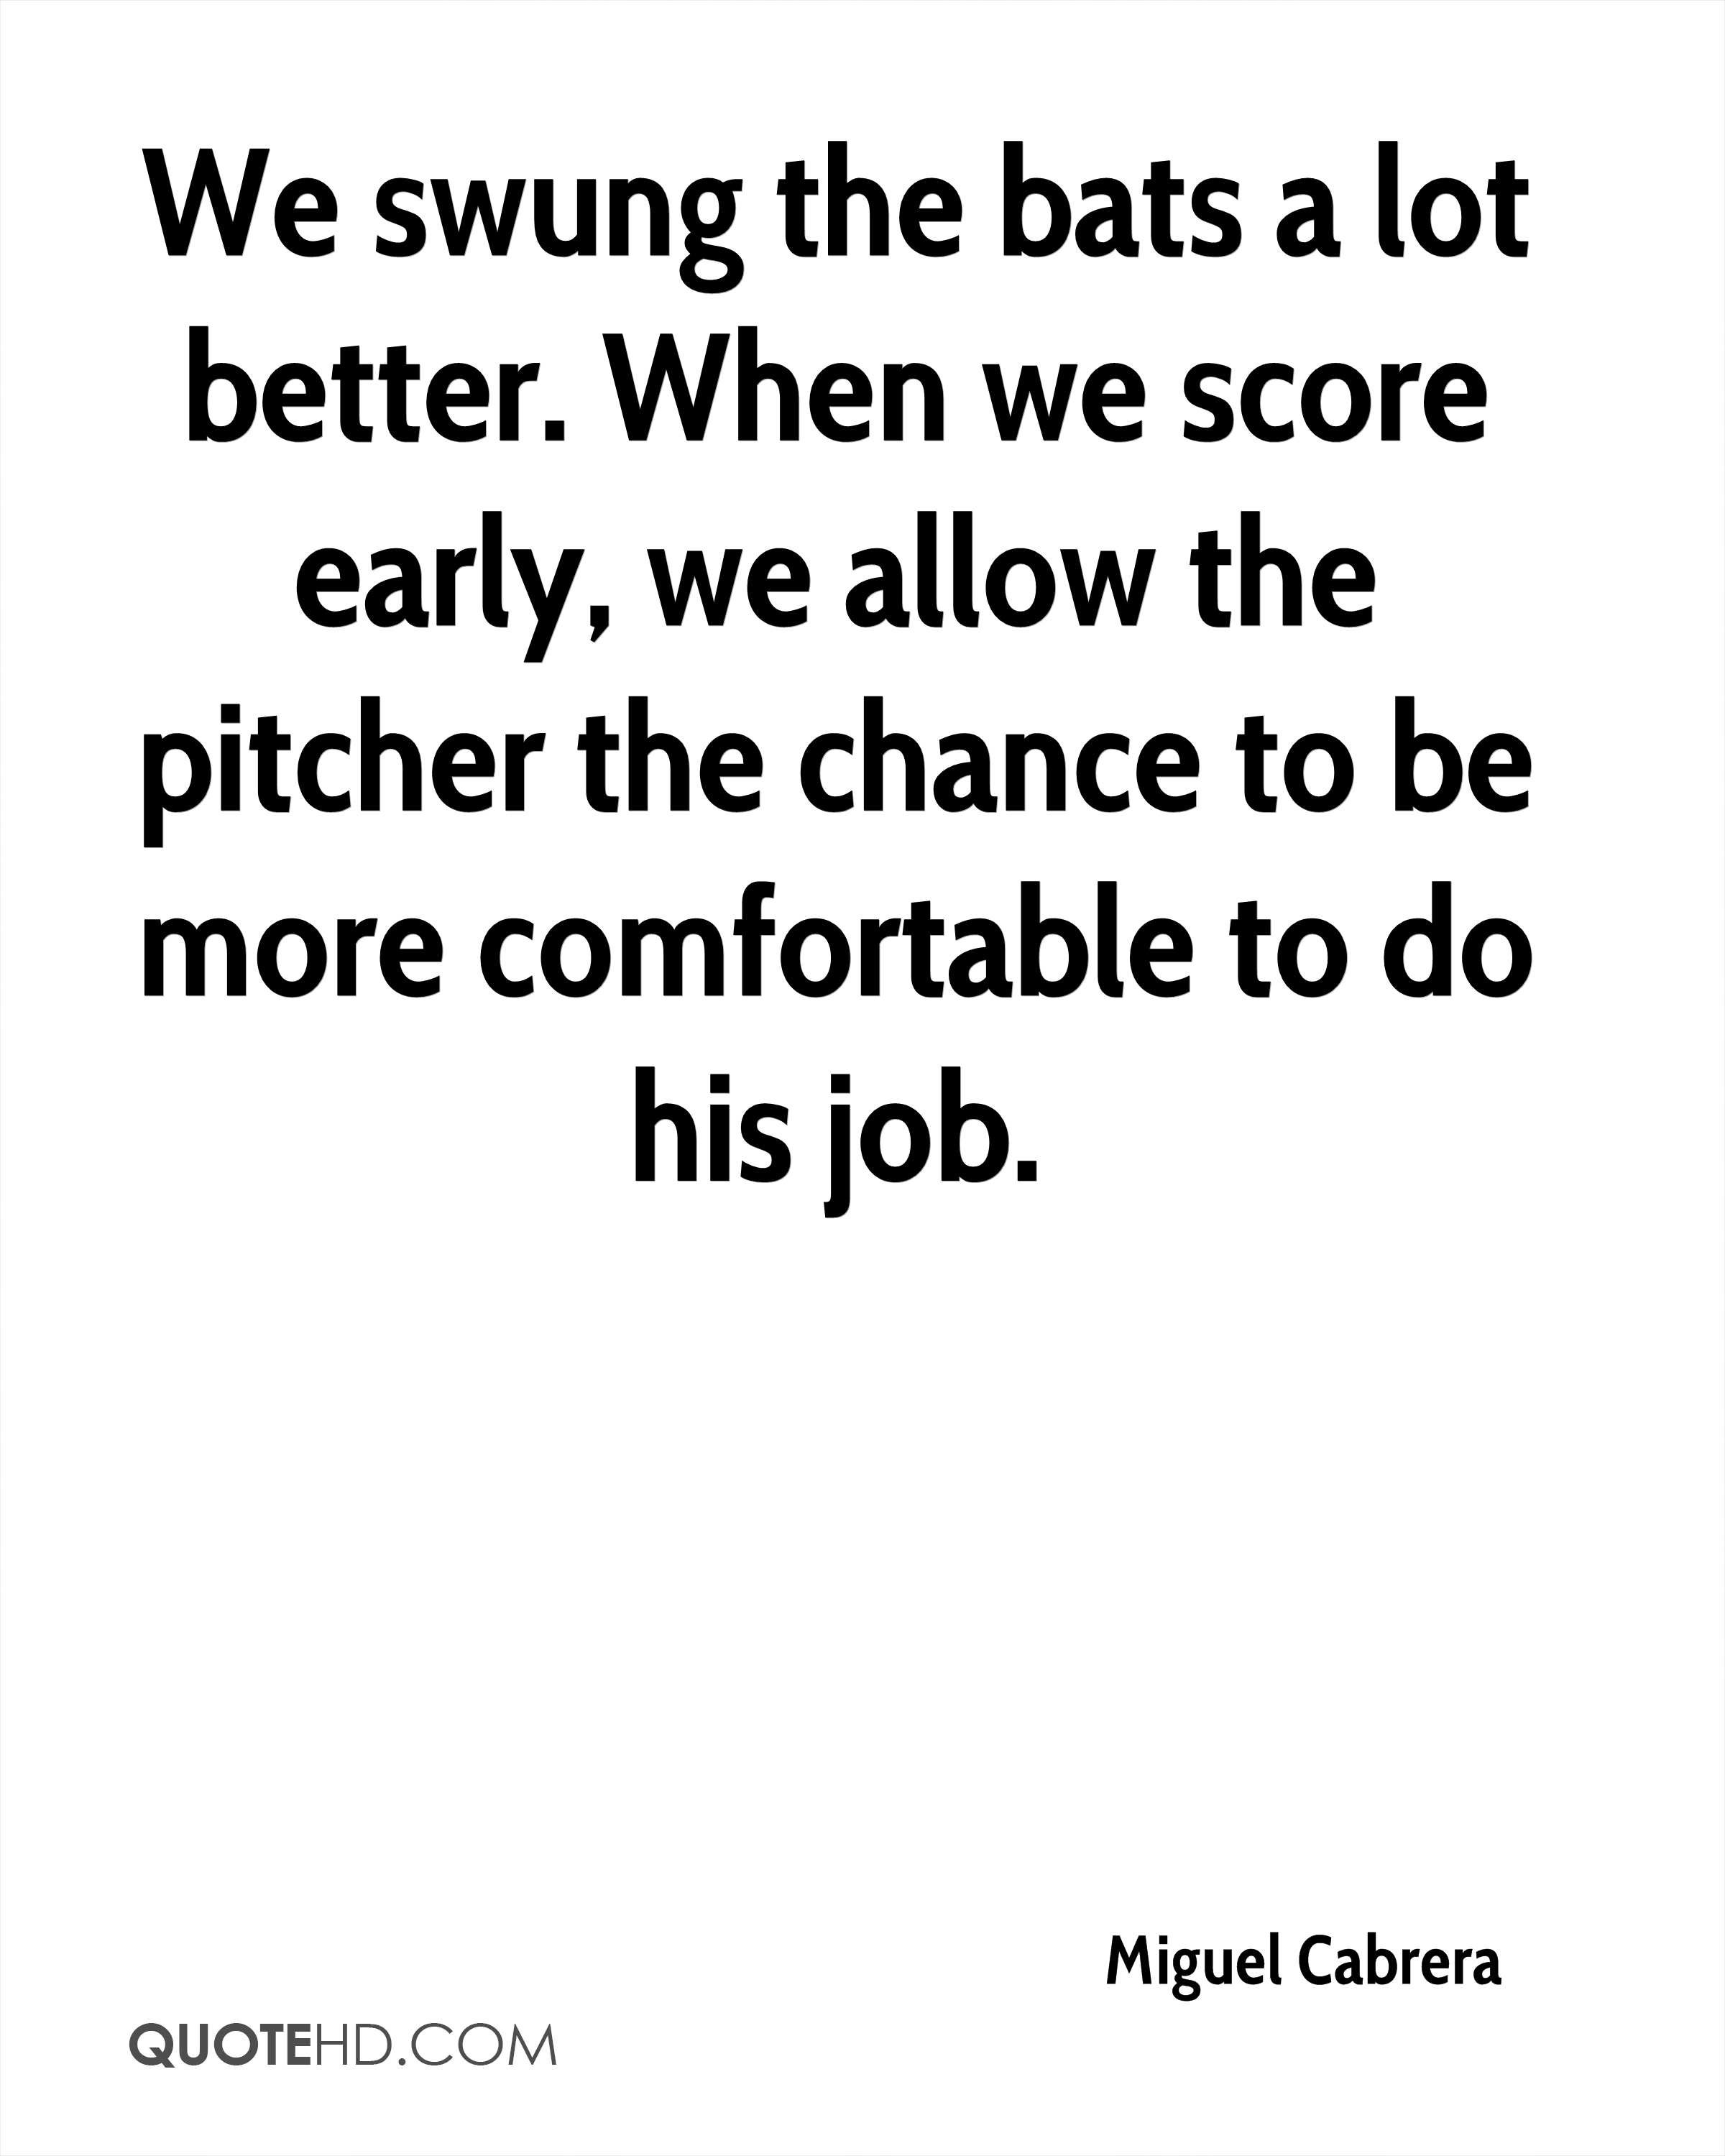 We swung the bats a lot better. When we score early, we allow the pitcher the chance to be more comfortable to do his job.